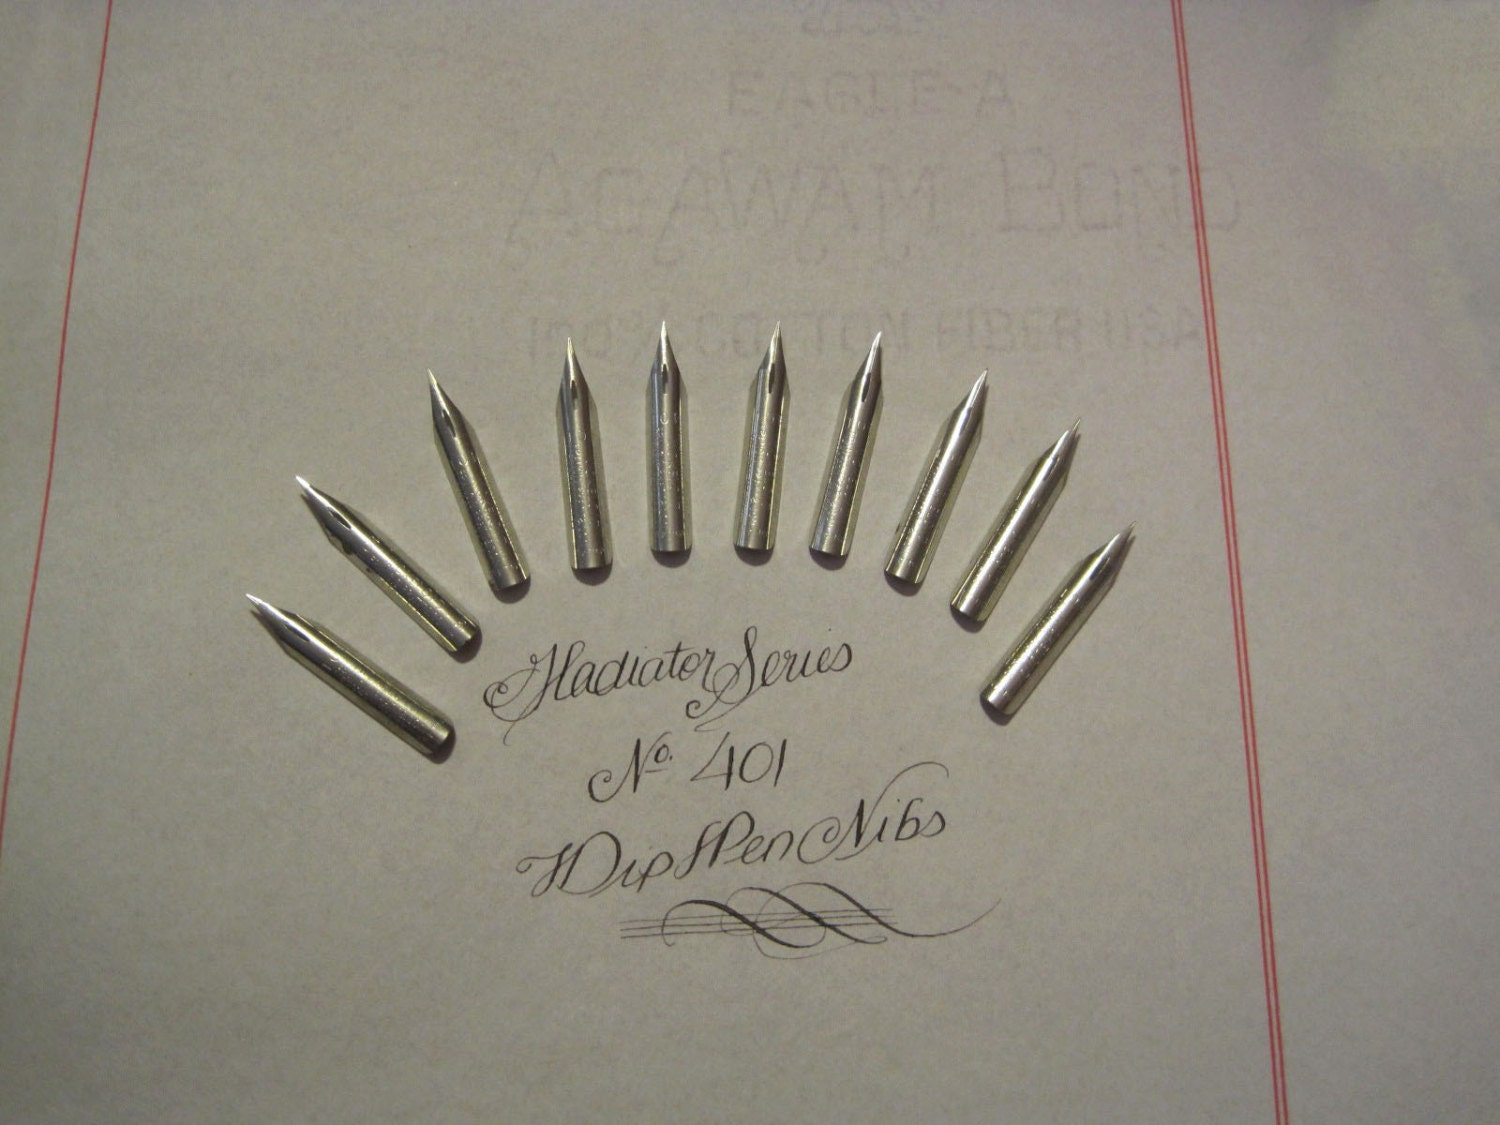 Lot Of 10 Dip Pen Nibs For Calligraphy Or Spencerian Writing